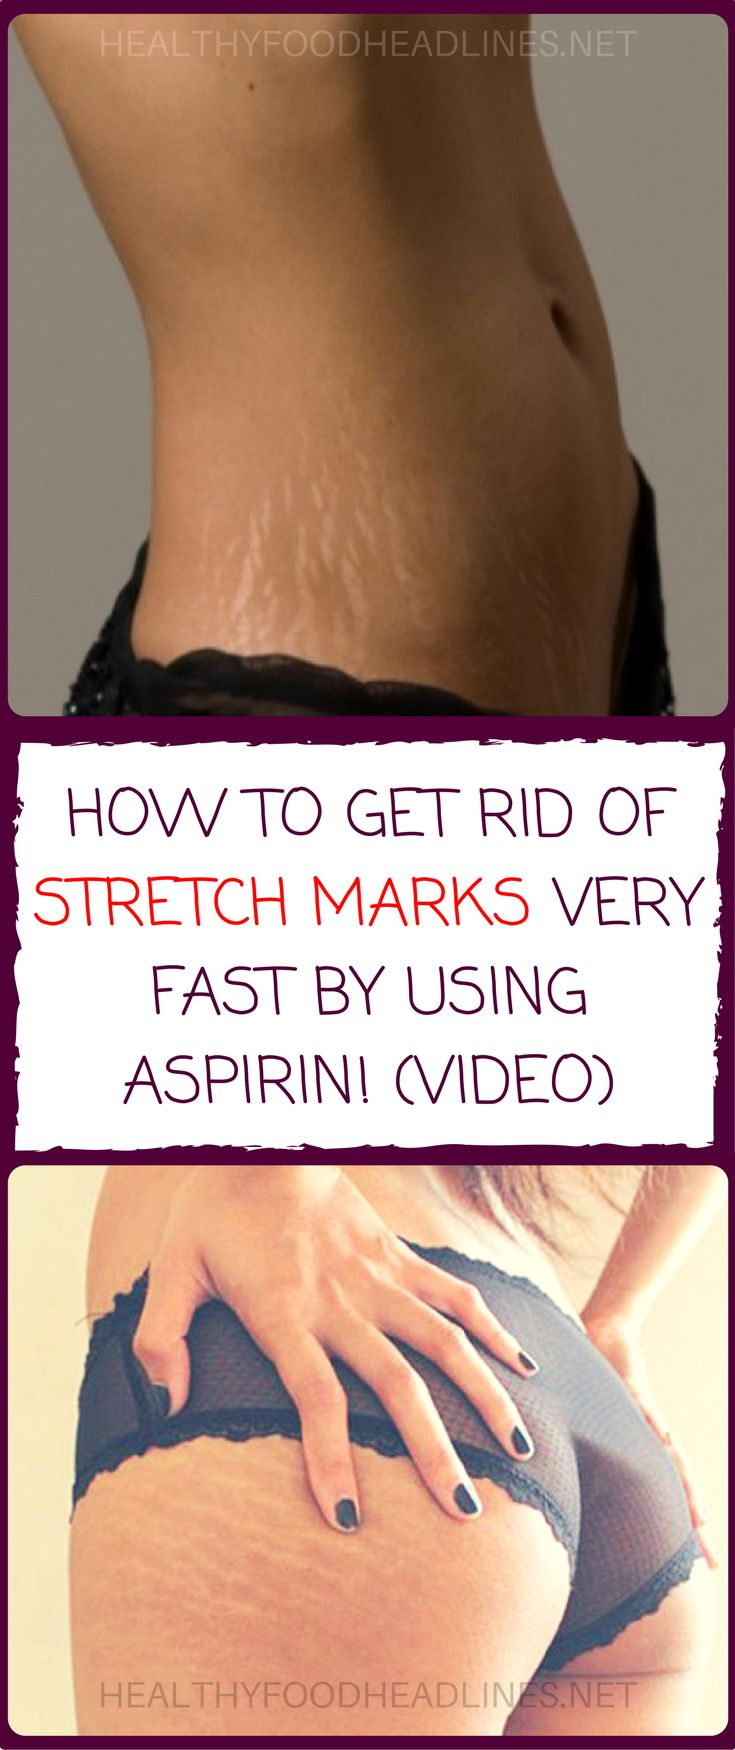 HOW TO GET RID OF STRETCH MARKS VERY FAST BY USING ASPIRIN! (VIDEO) http://whymattress.com/how-to-choose-the-best-mattress-for-back-pain/